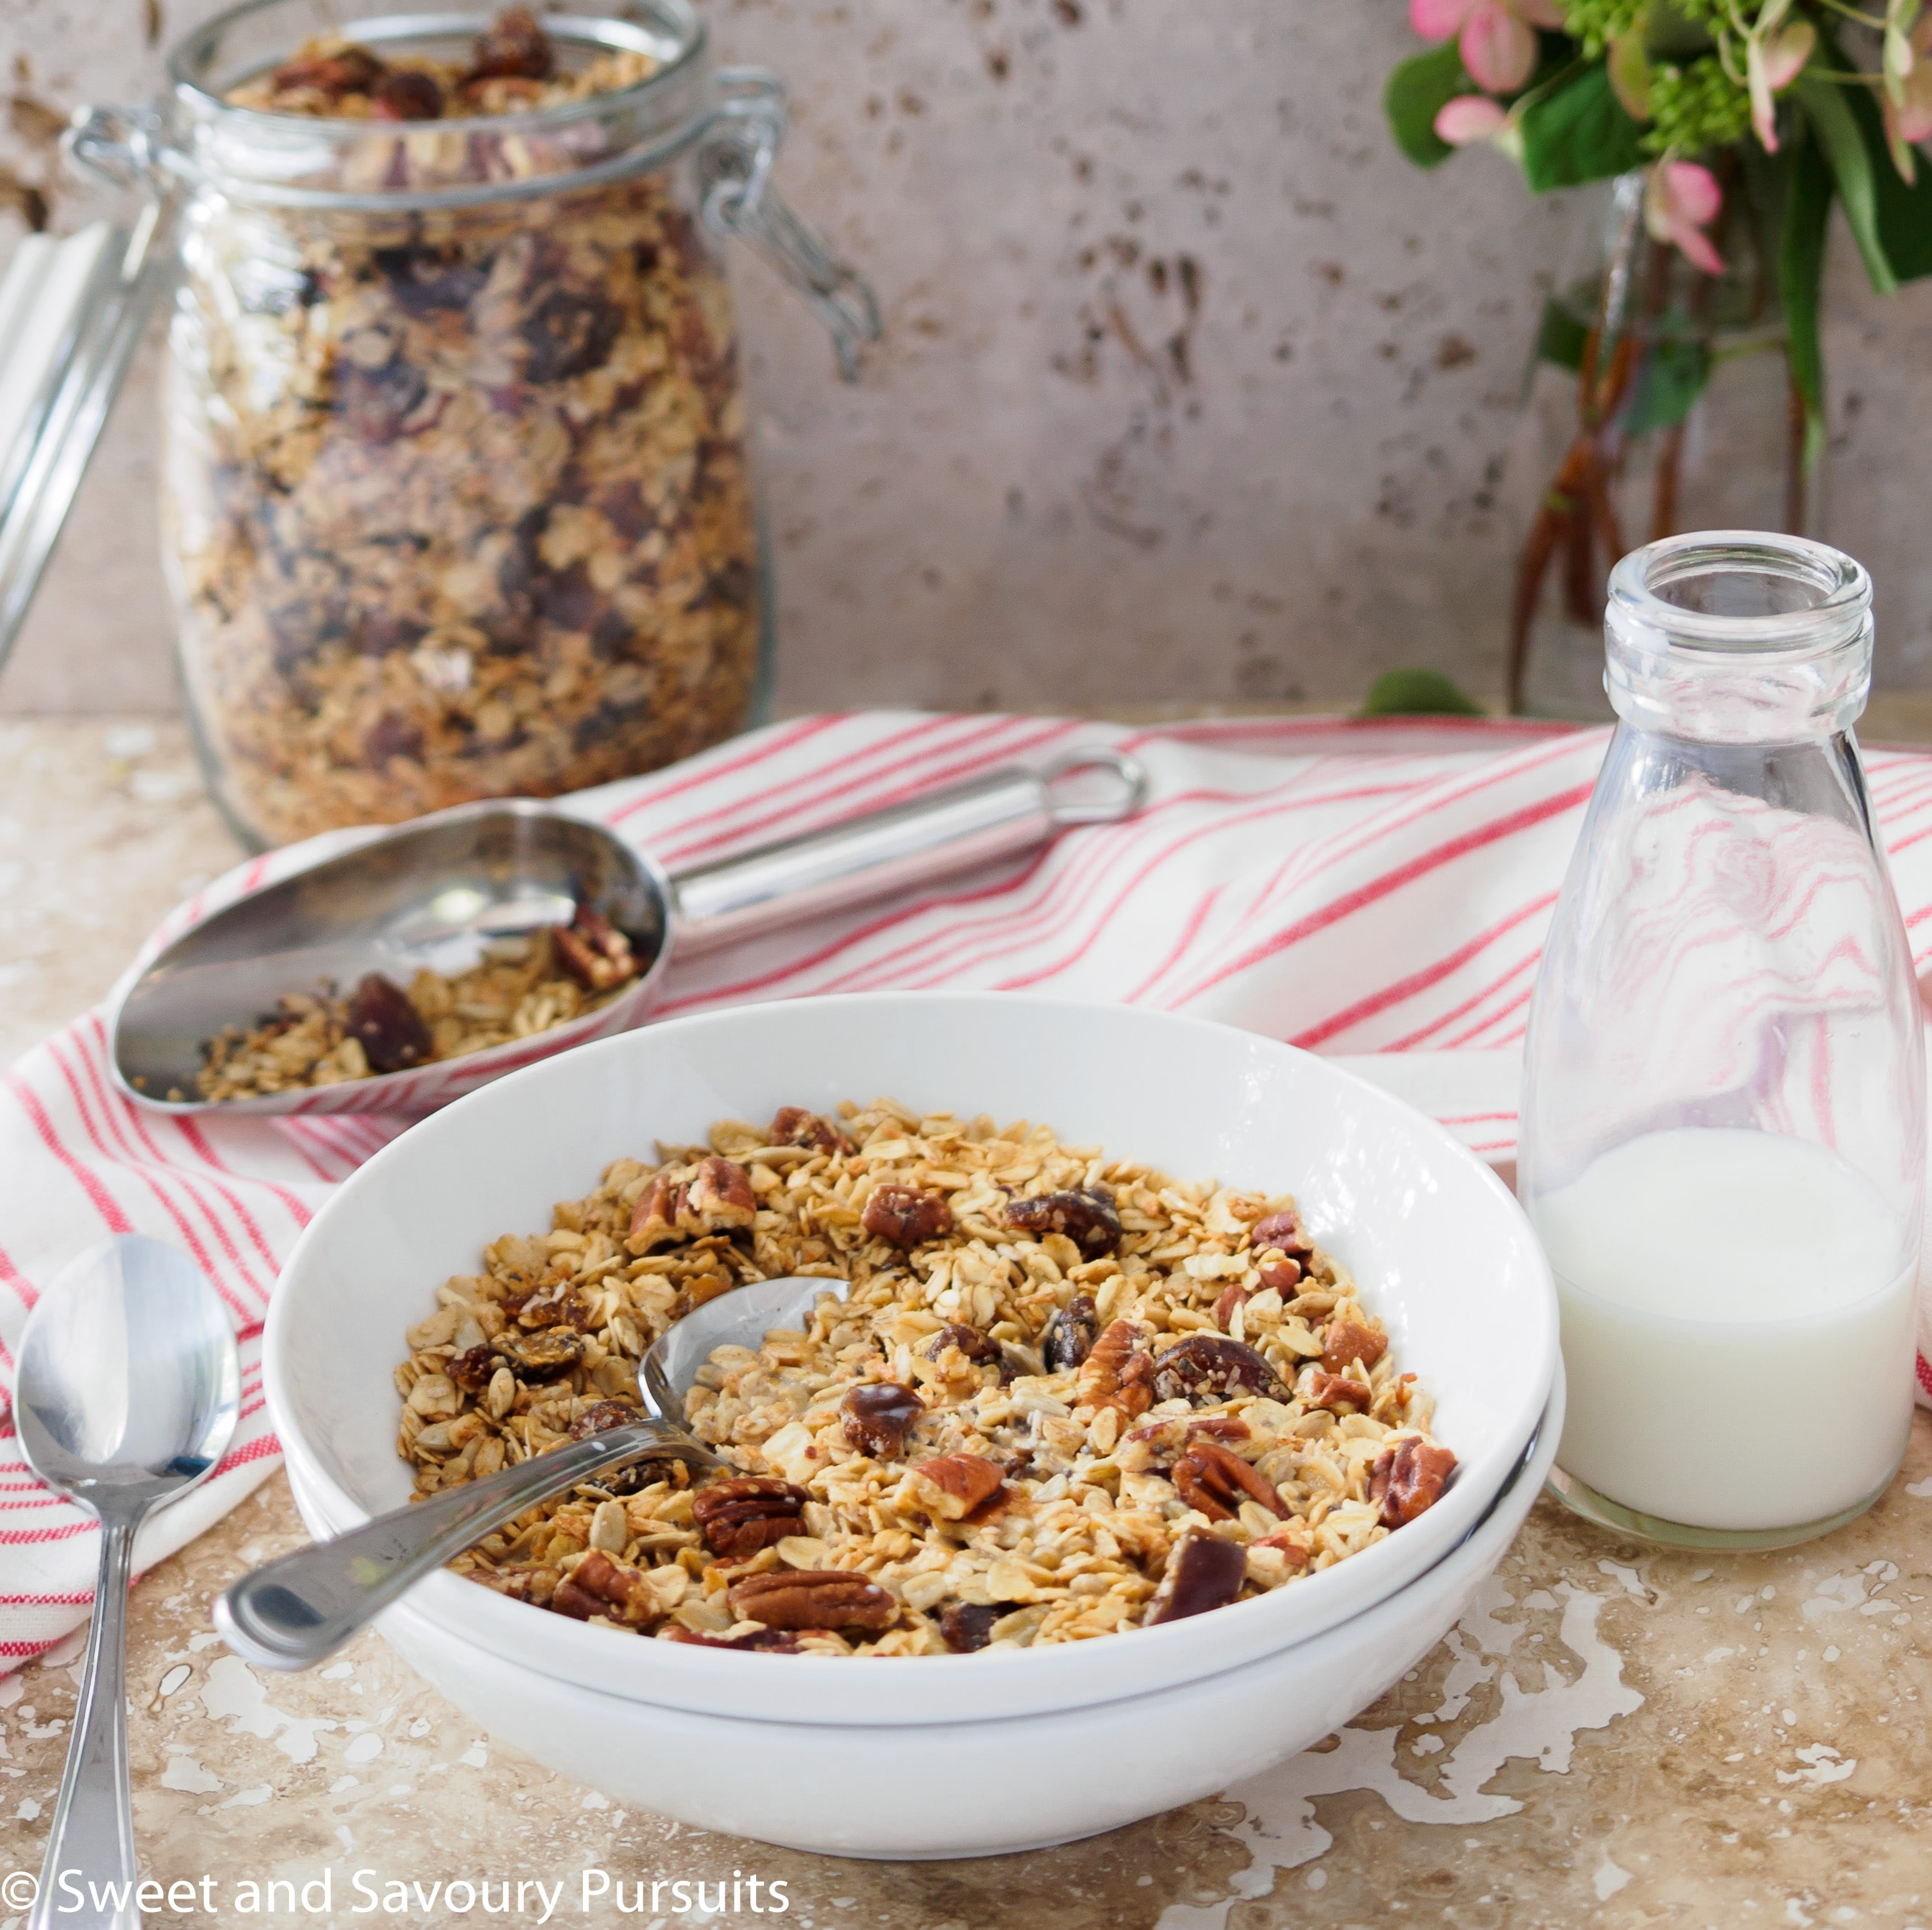 Bowl of Homemade Maple Pecan Granola with Dates.